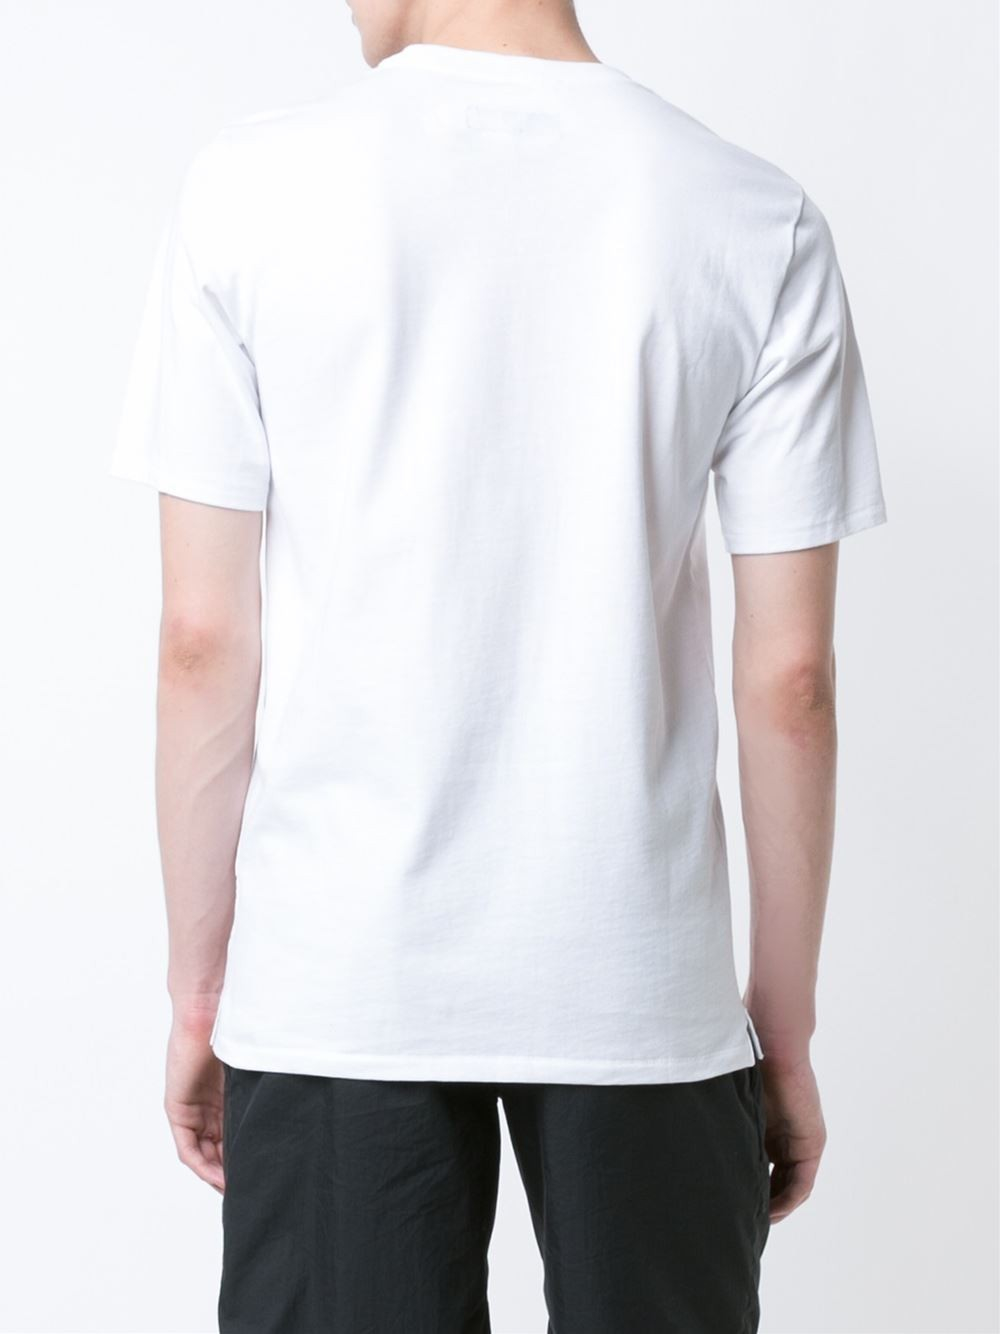 Rag Bone 39 Sour Face Embroidery T Shirt 39 In White For Men